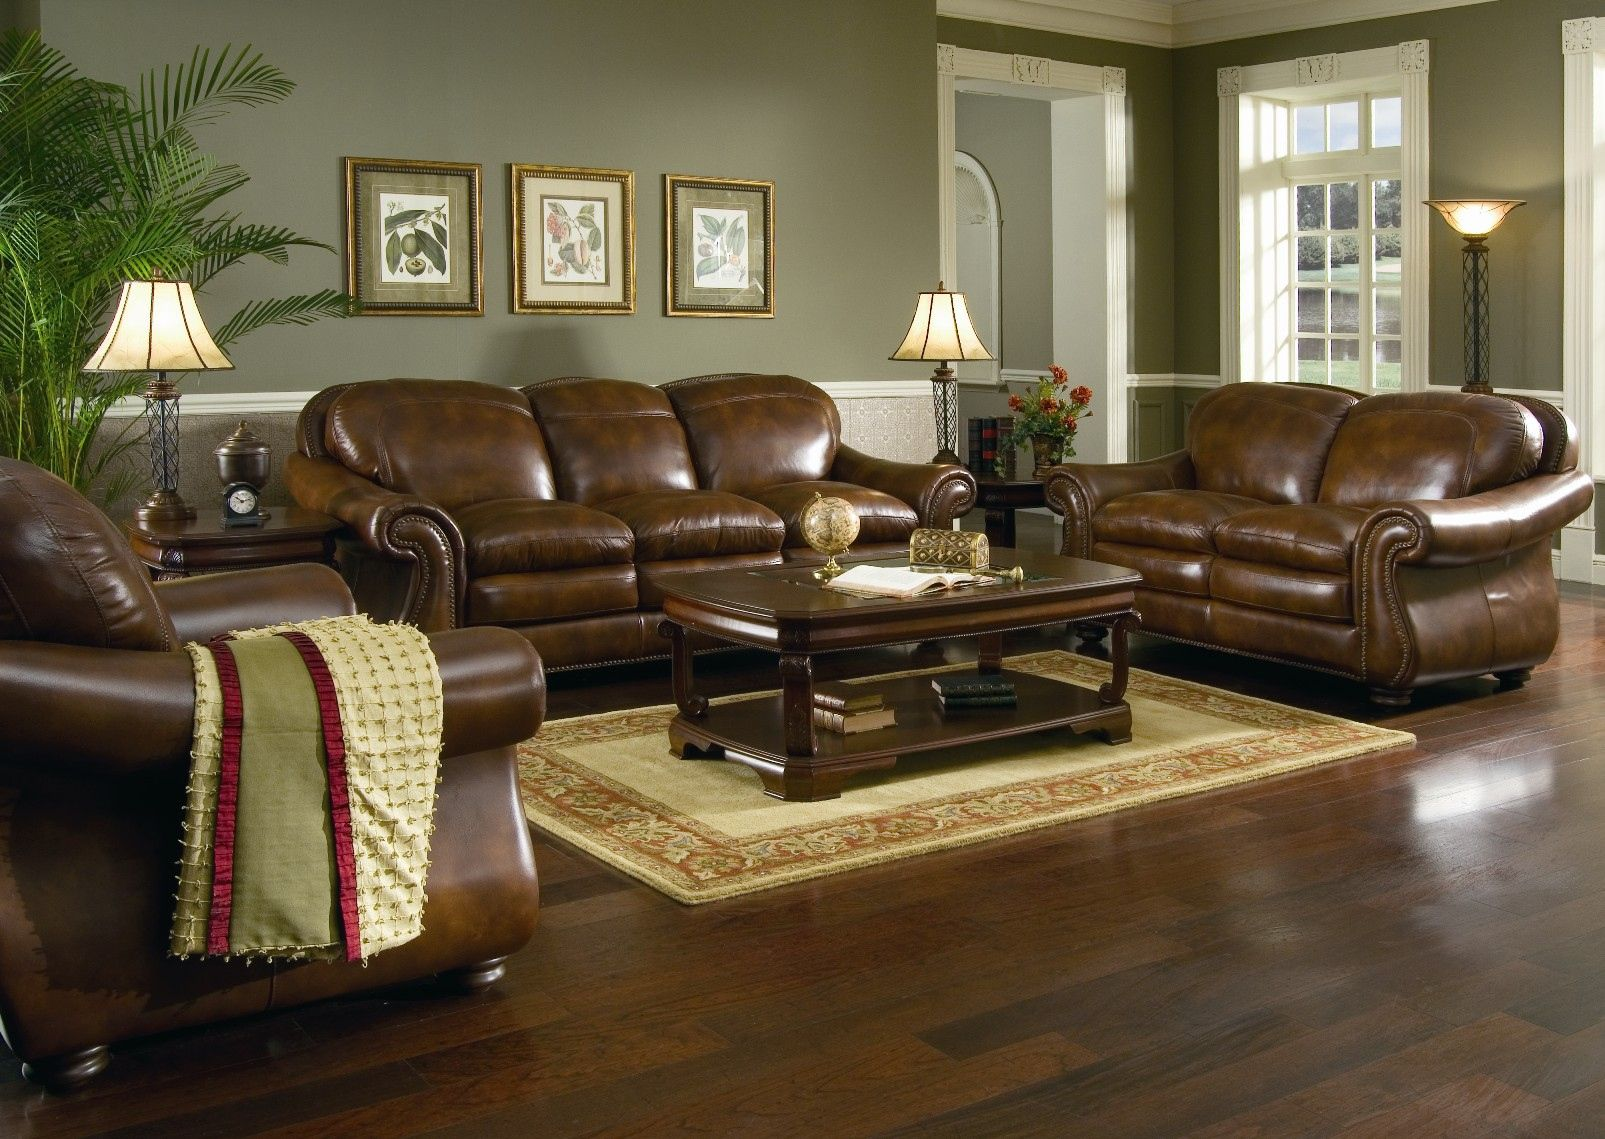 Decorating A Living Room With Brown Leather Furniture  Modern Amazing Brown Sofas In Living Rooms Design Ideas